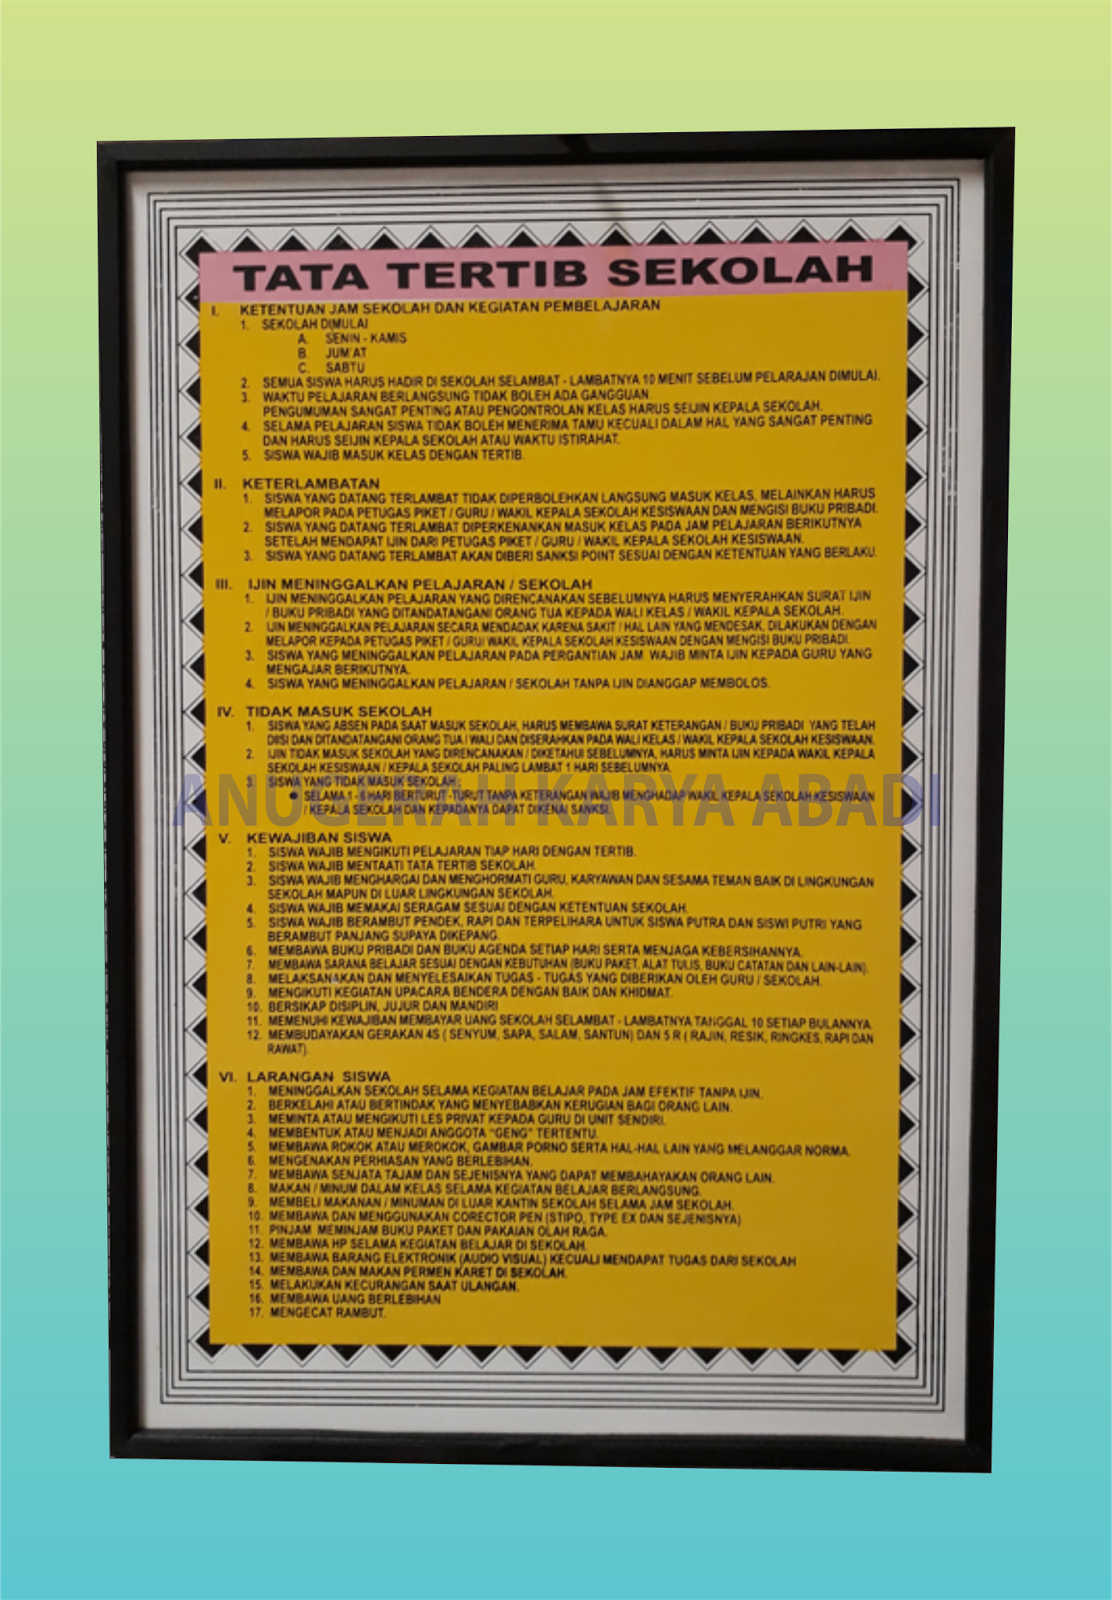 Papan Data SMP  MTs  Papan Data  CV Anugerah Karya